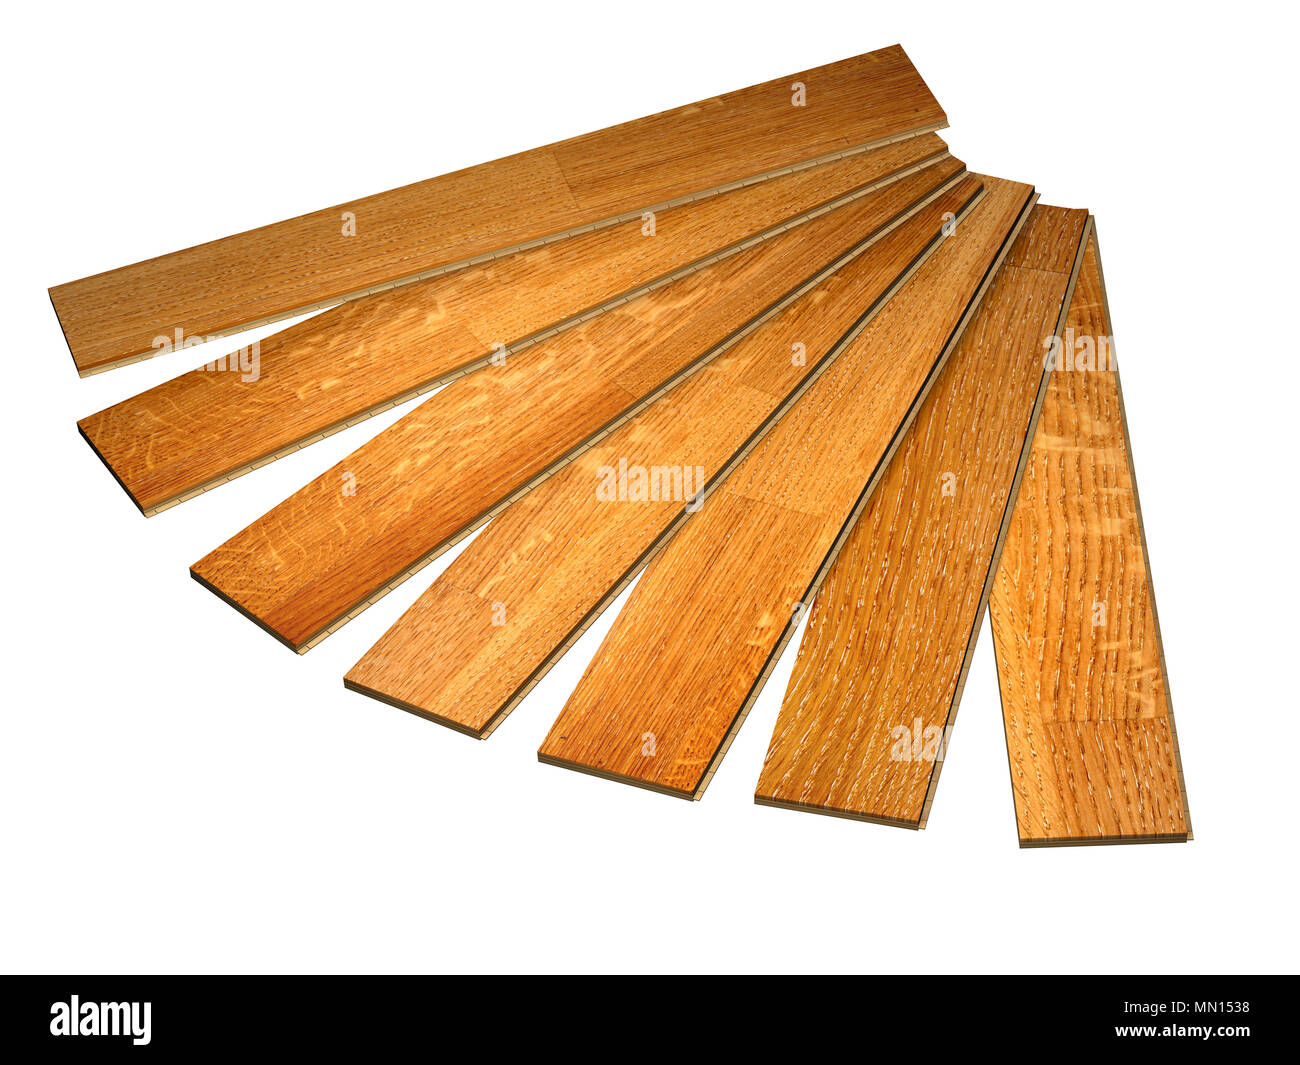 New planks of oak parquet with rustic texture. Isolated on white background. 3d render - Stock Image